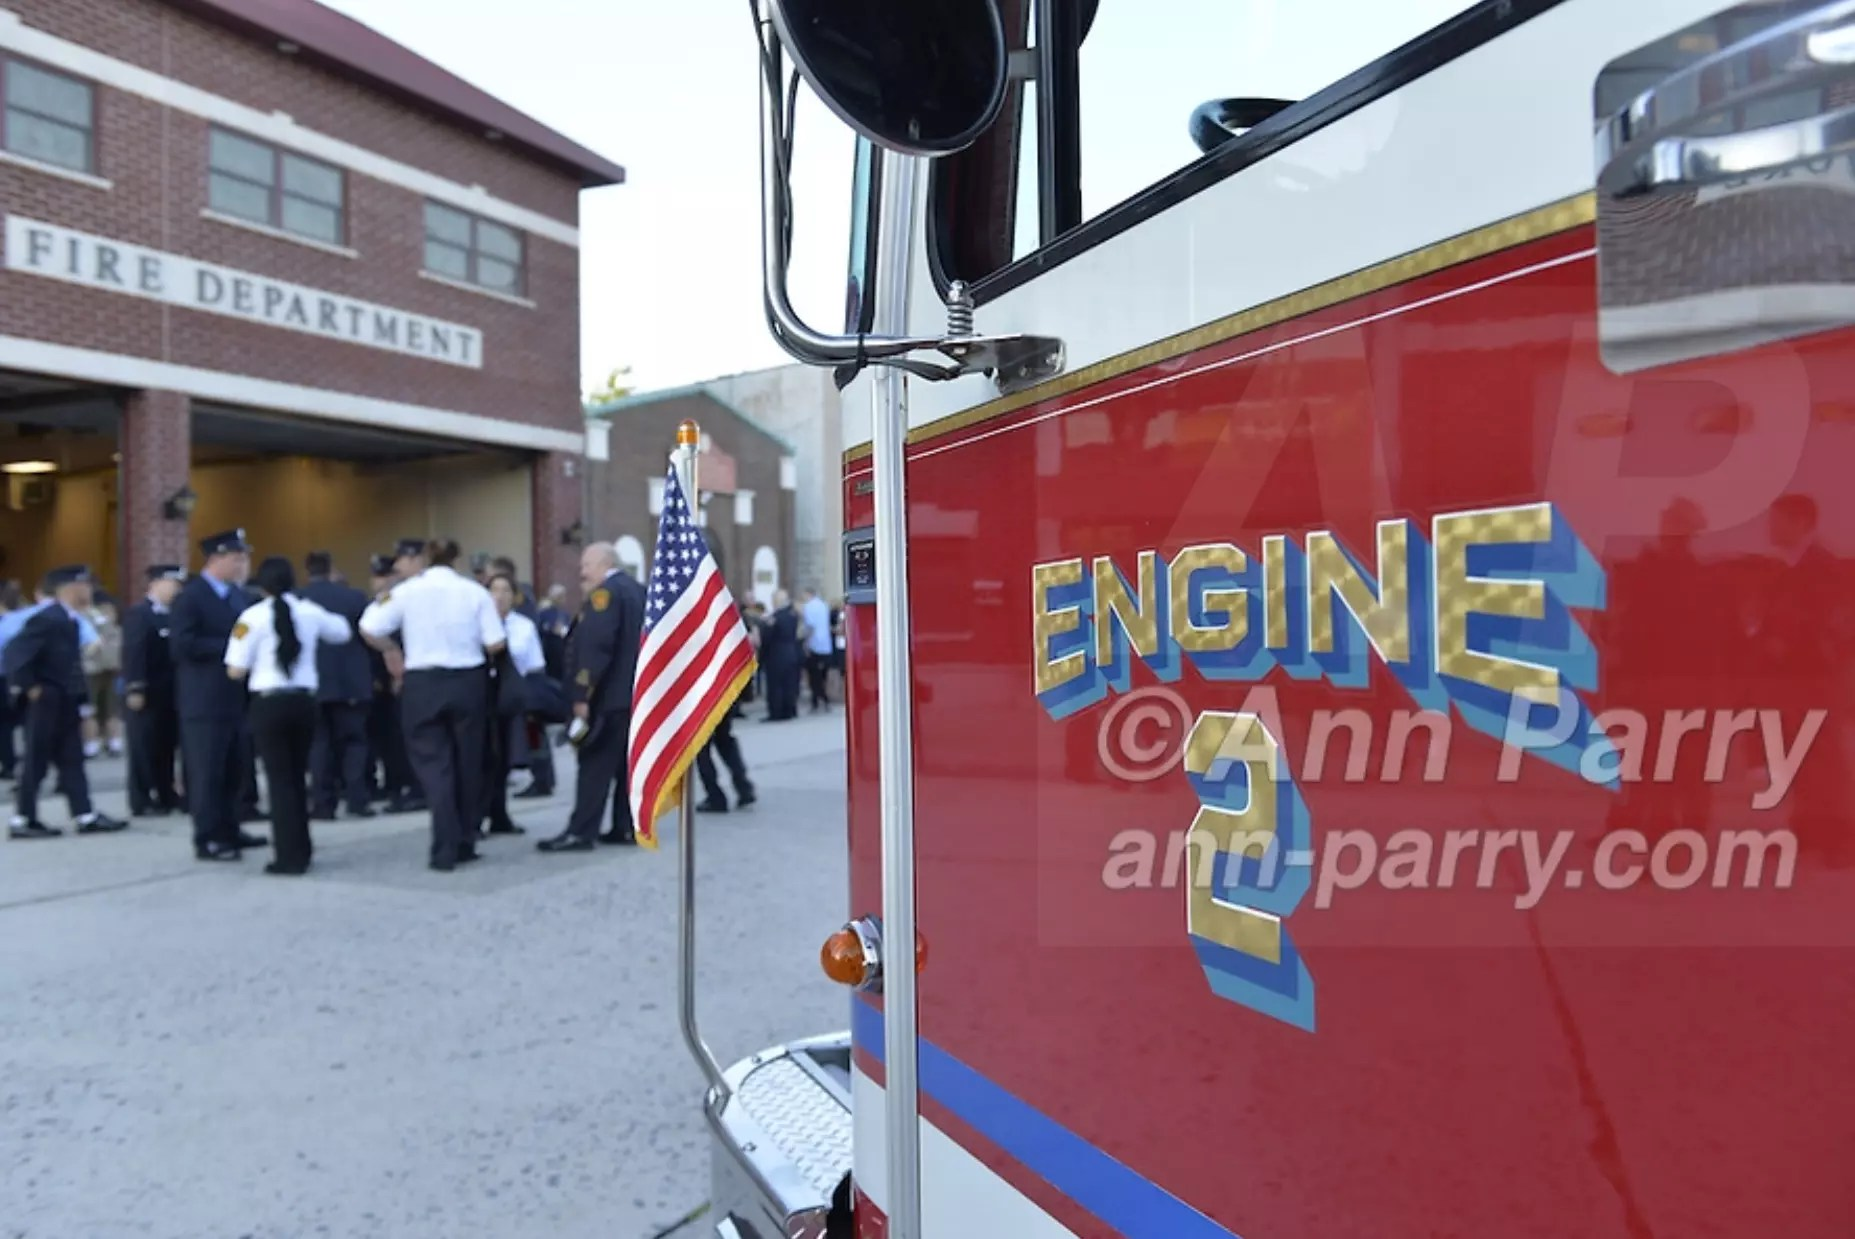 Bellmore, NY, USA. Sept. 11, 2015. A Bellmore fire engine is parked in front of the Bellmore Memorial Ceremony for 3 Bellmore volunteer firefighters and 7 residents who died due to 9/11 terrorist attack at NYC Twin Towers. Bellmore volunteer firefighters Lt. Kevin Prior and F.F. Adam Rand died on 9/11/2001, and F.F. Sean McCarthy died in 2008 due to illness related to working at scene of attack.